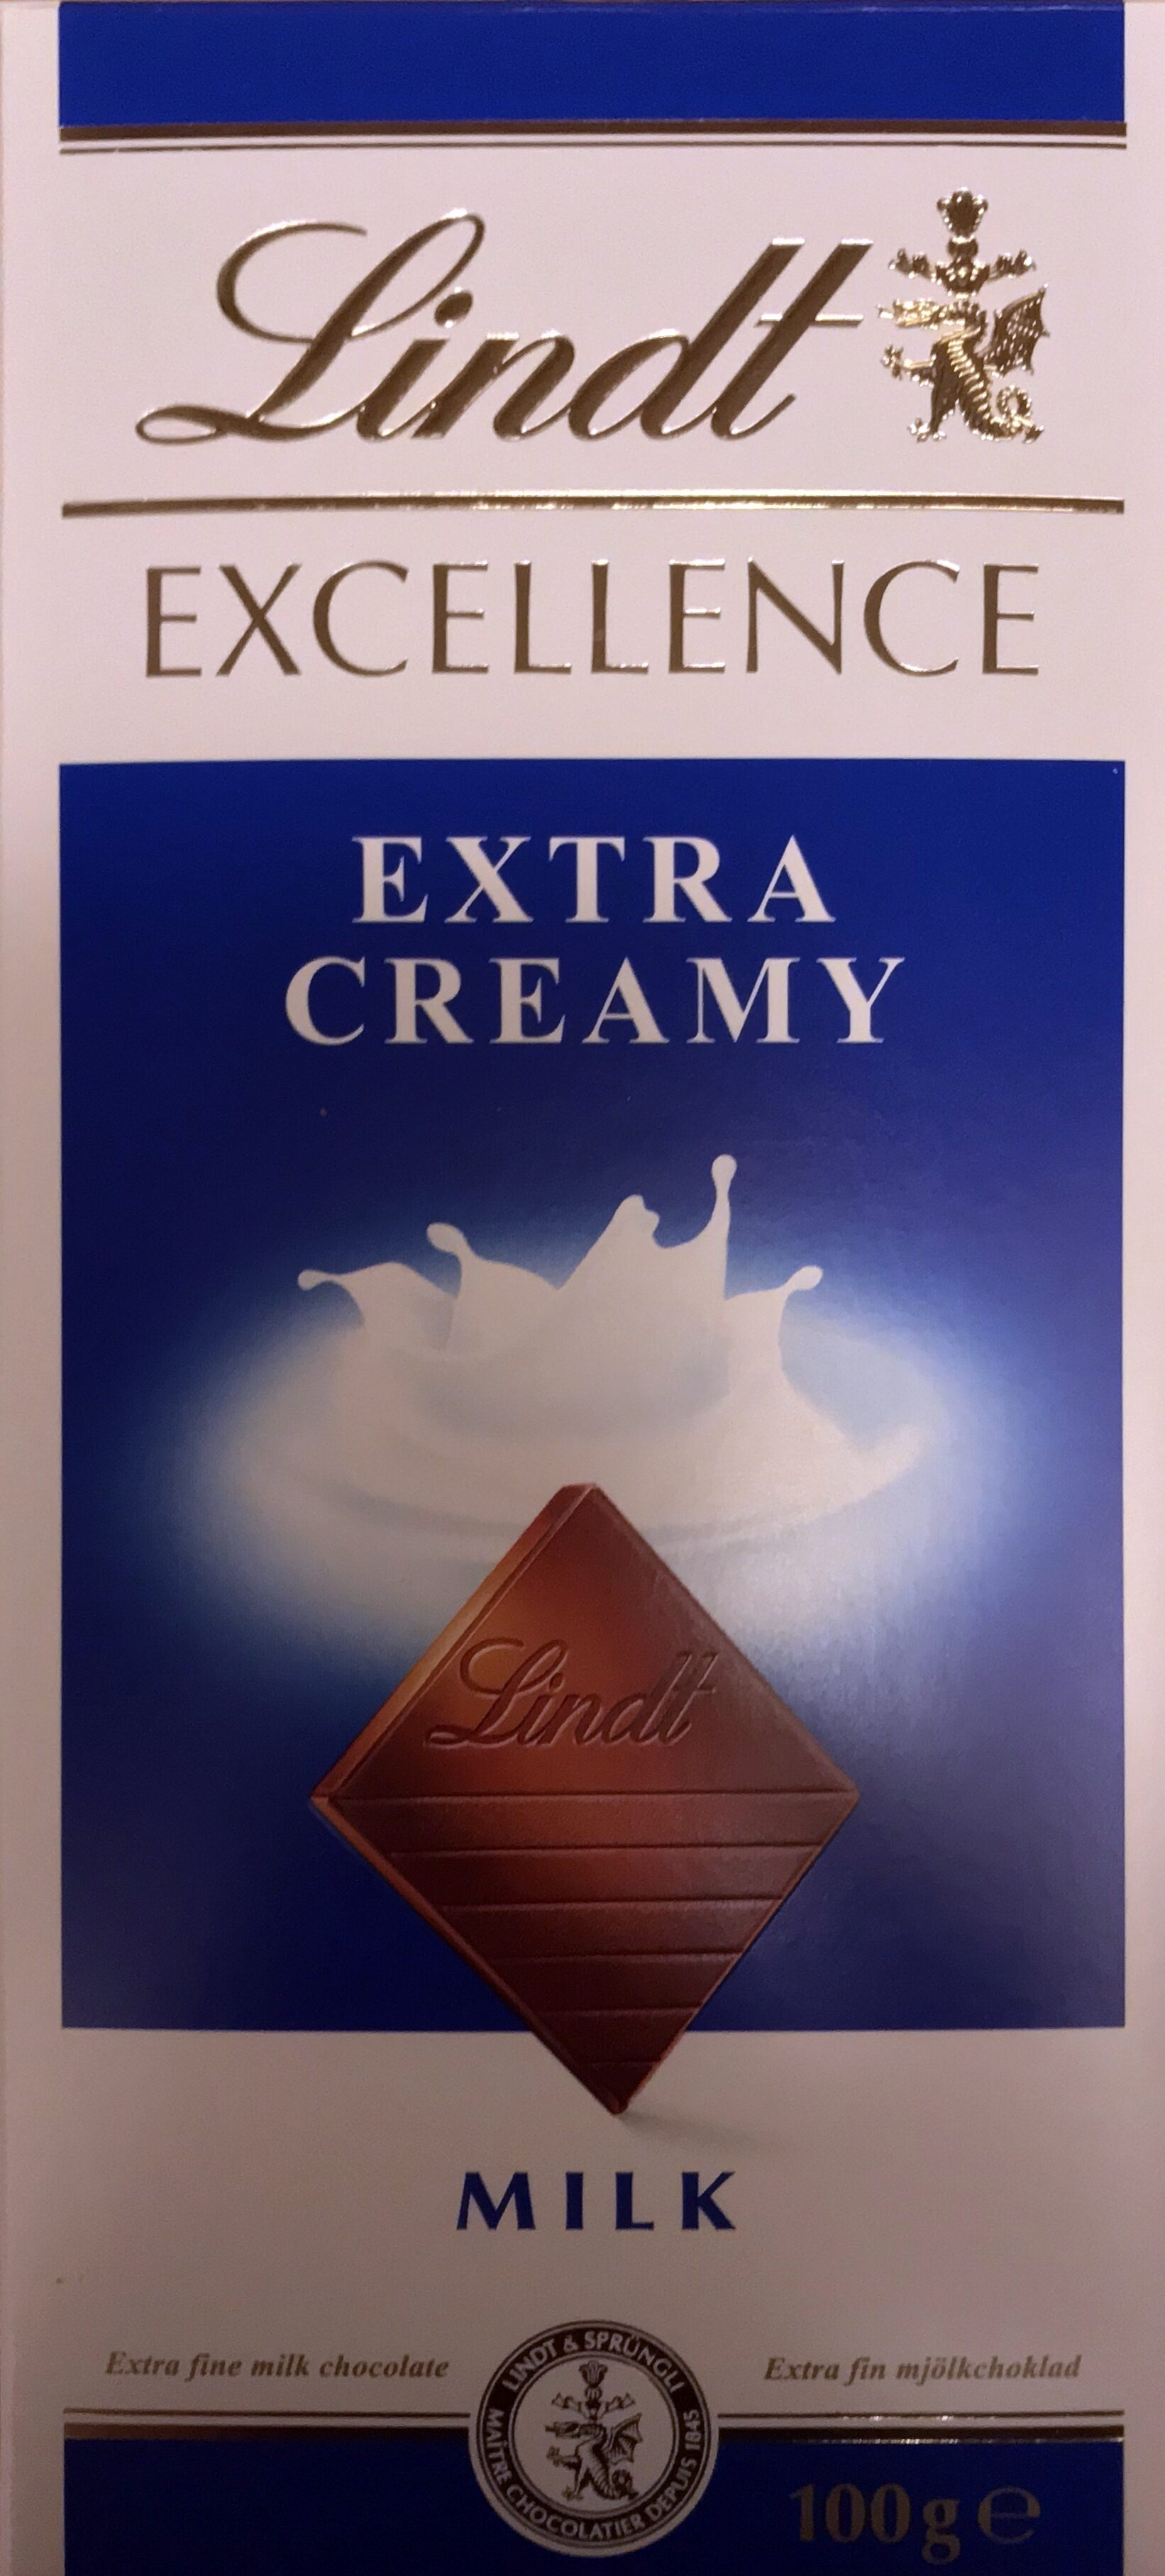 Lindt Excellence Extra Creamy Milk - Product - en